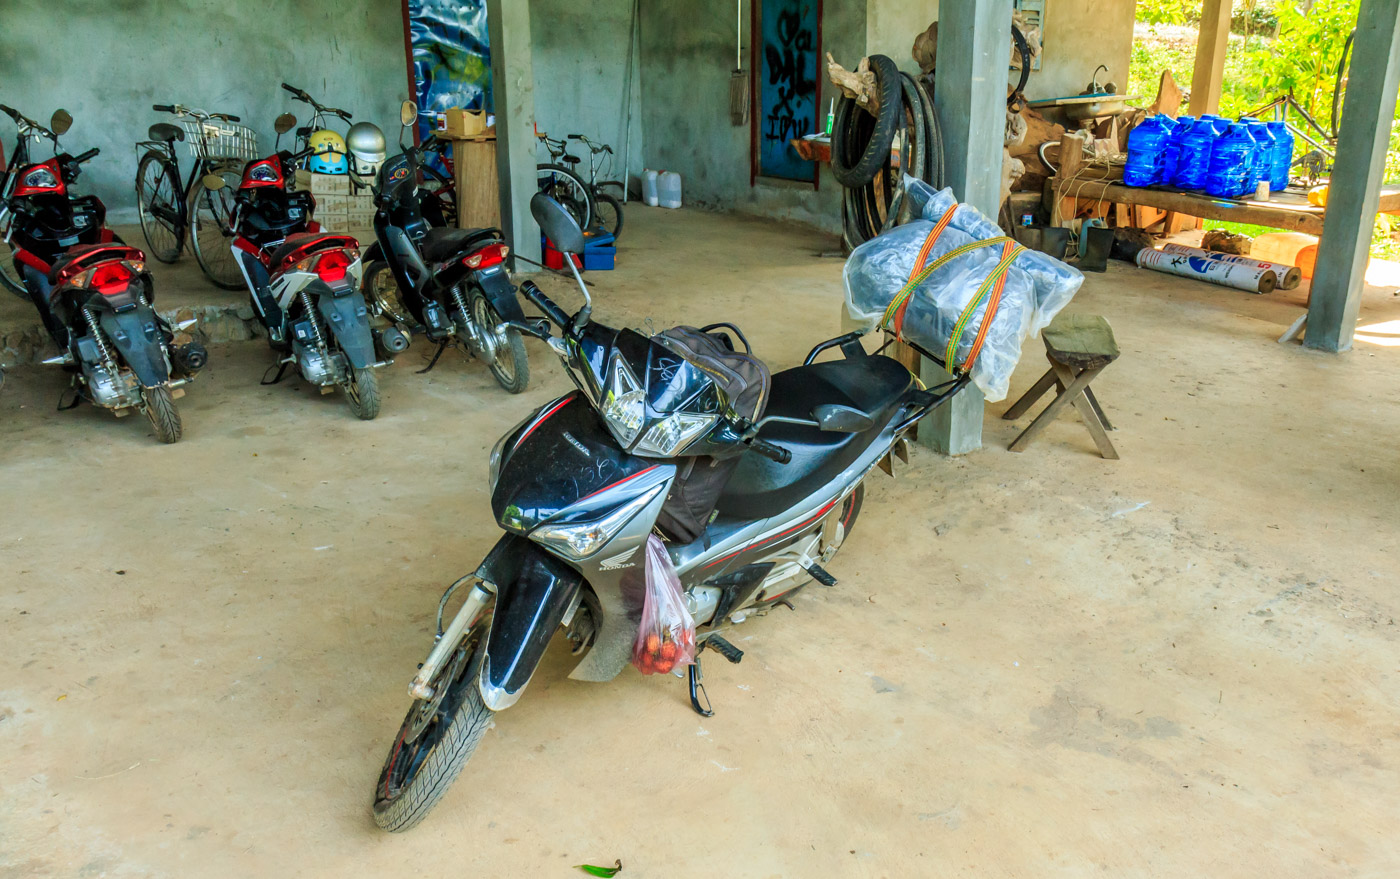 Tién, my Vietnamese motorbike, is ready to go home.